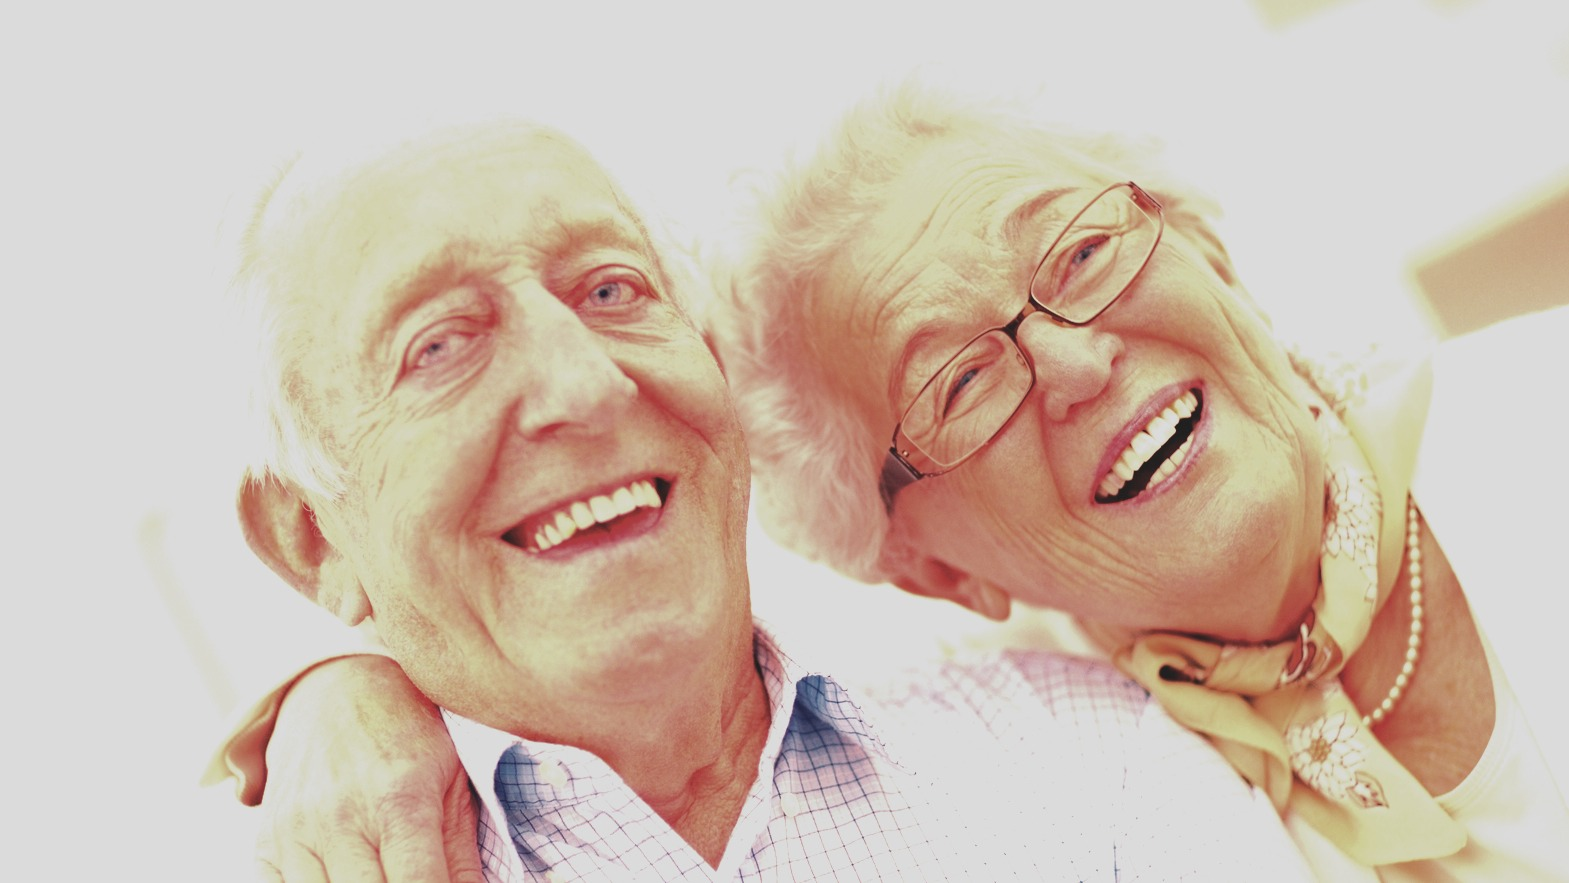 Couples last longer when they have the same level of attractiveness